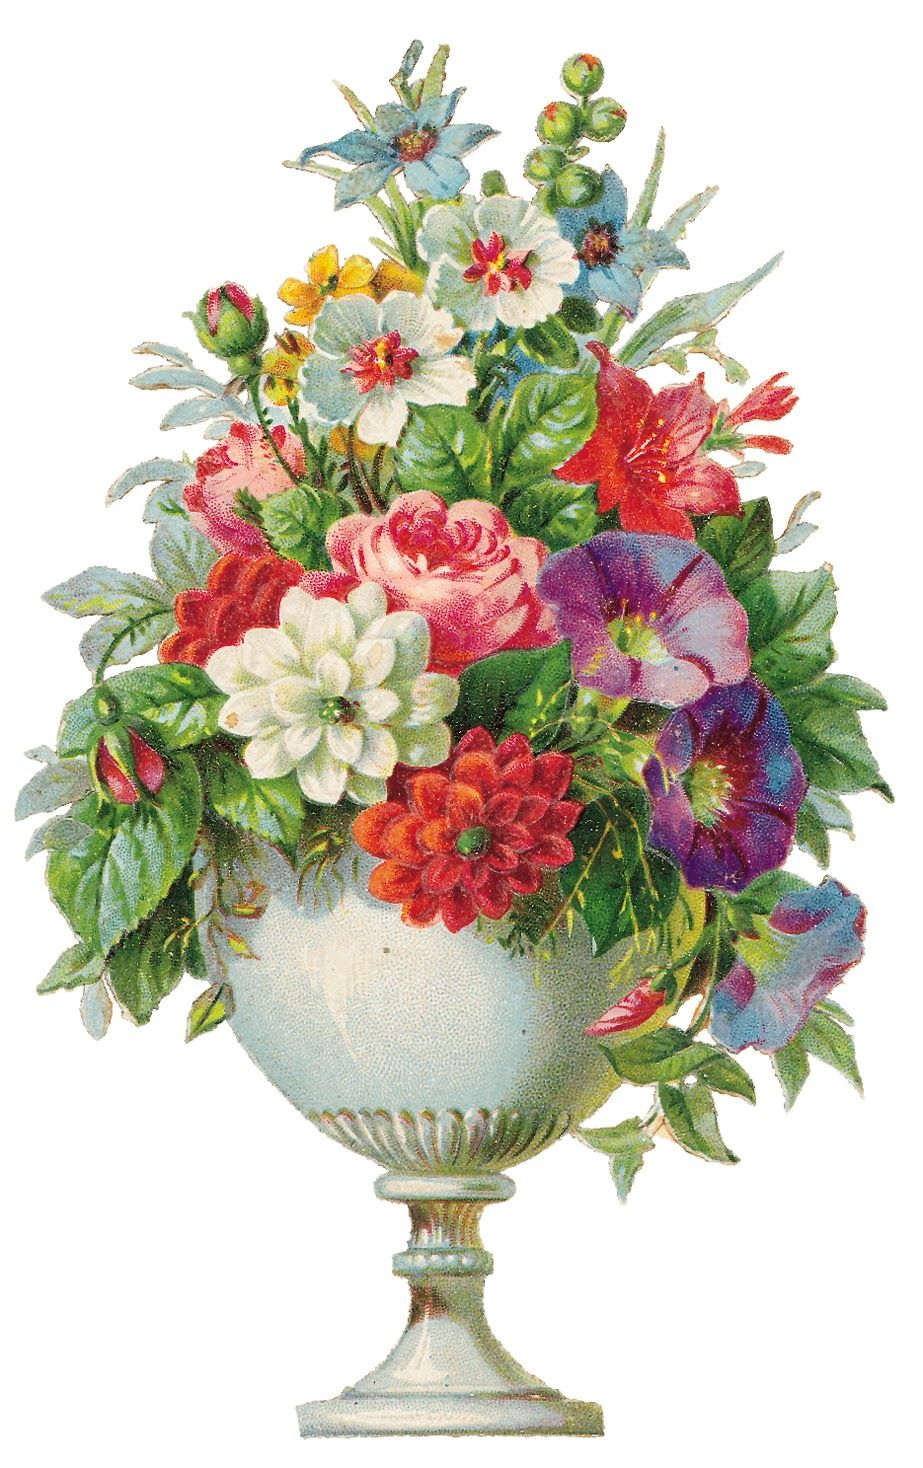 Vase of vintage flowers clipart graphic free Vintage Flowers Clip Art Borders | Vintagefeedsacks Vintage ... graphic free